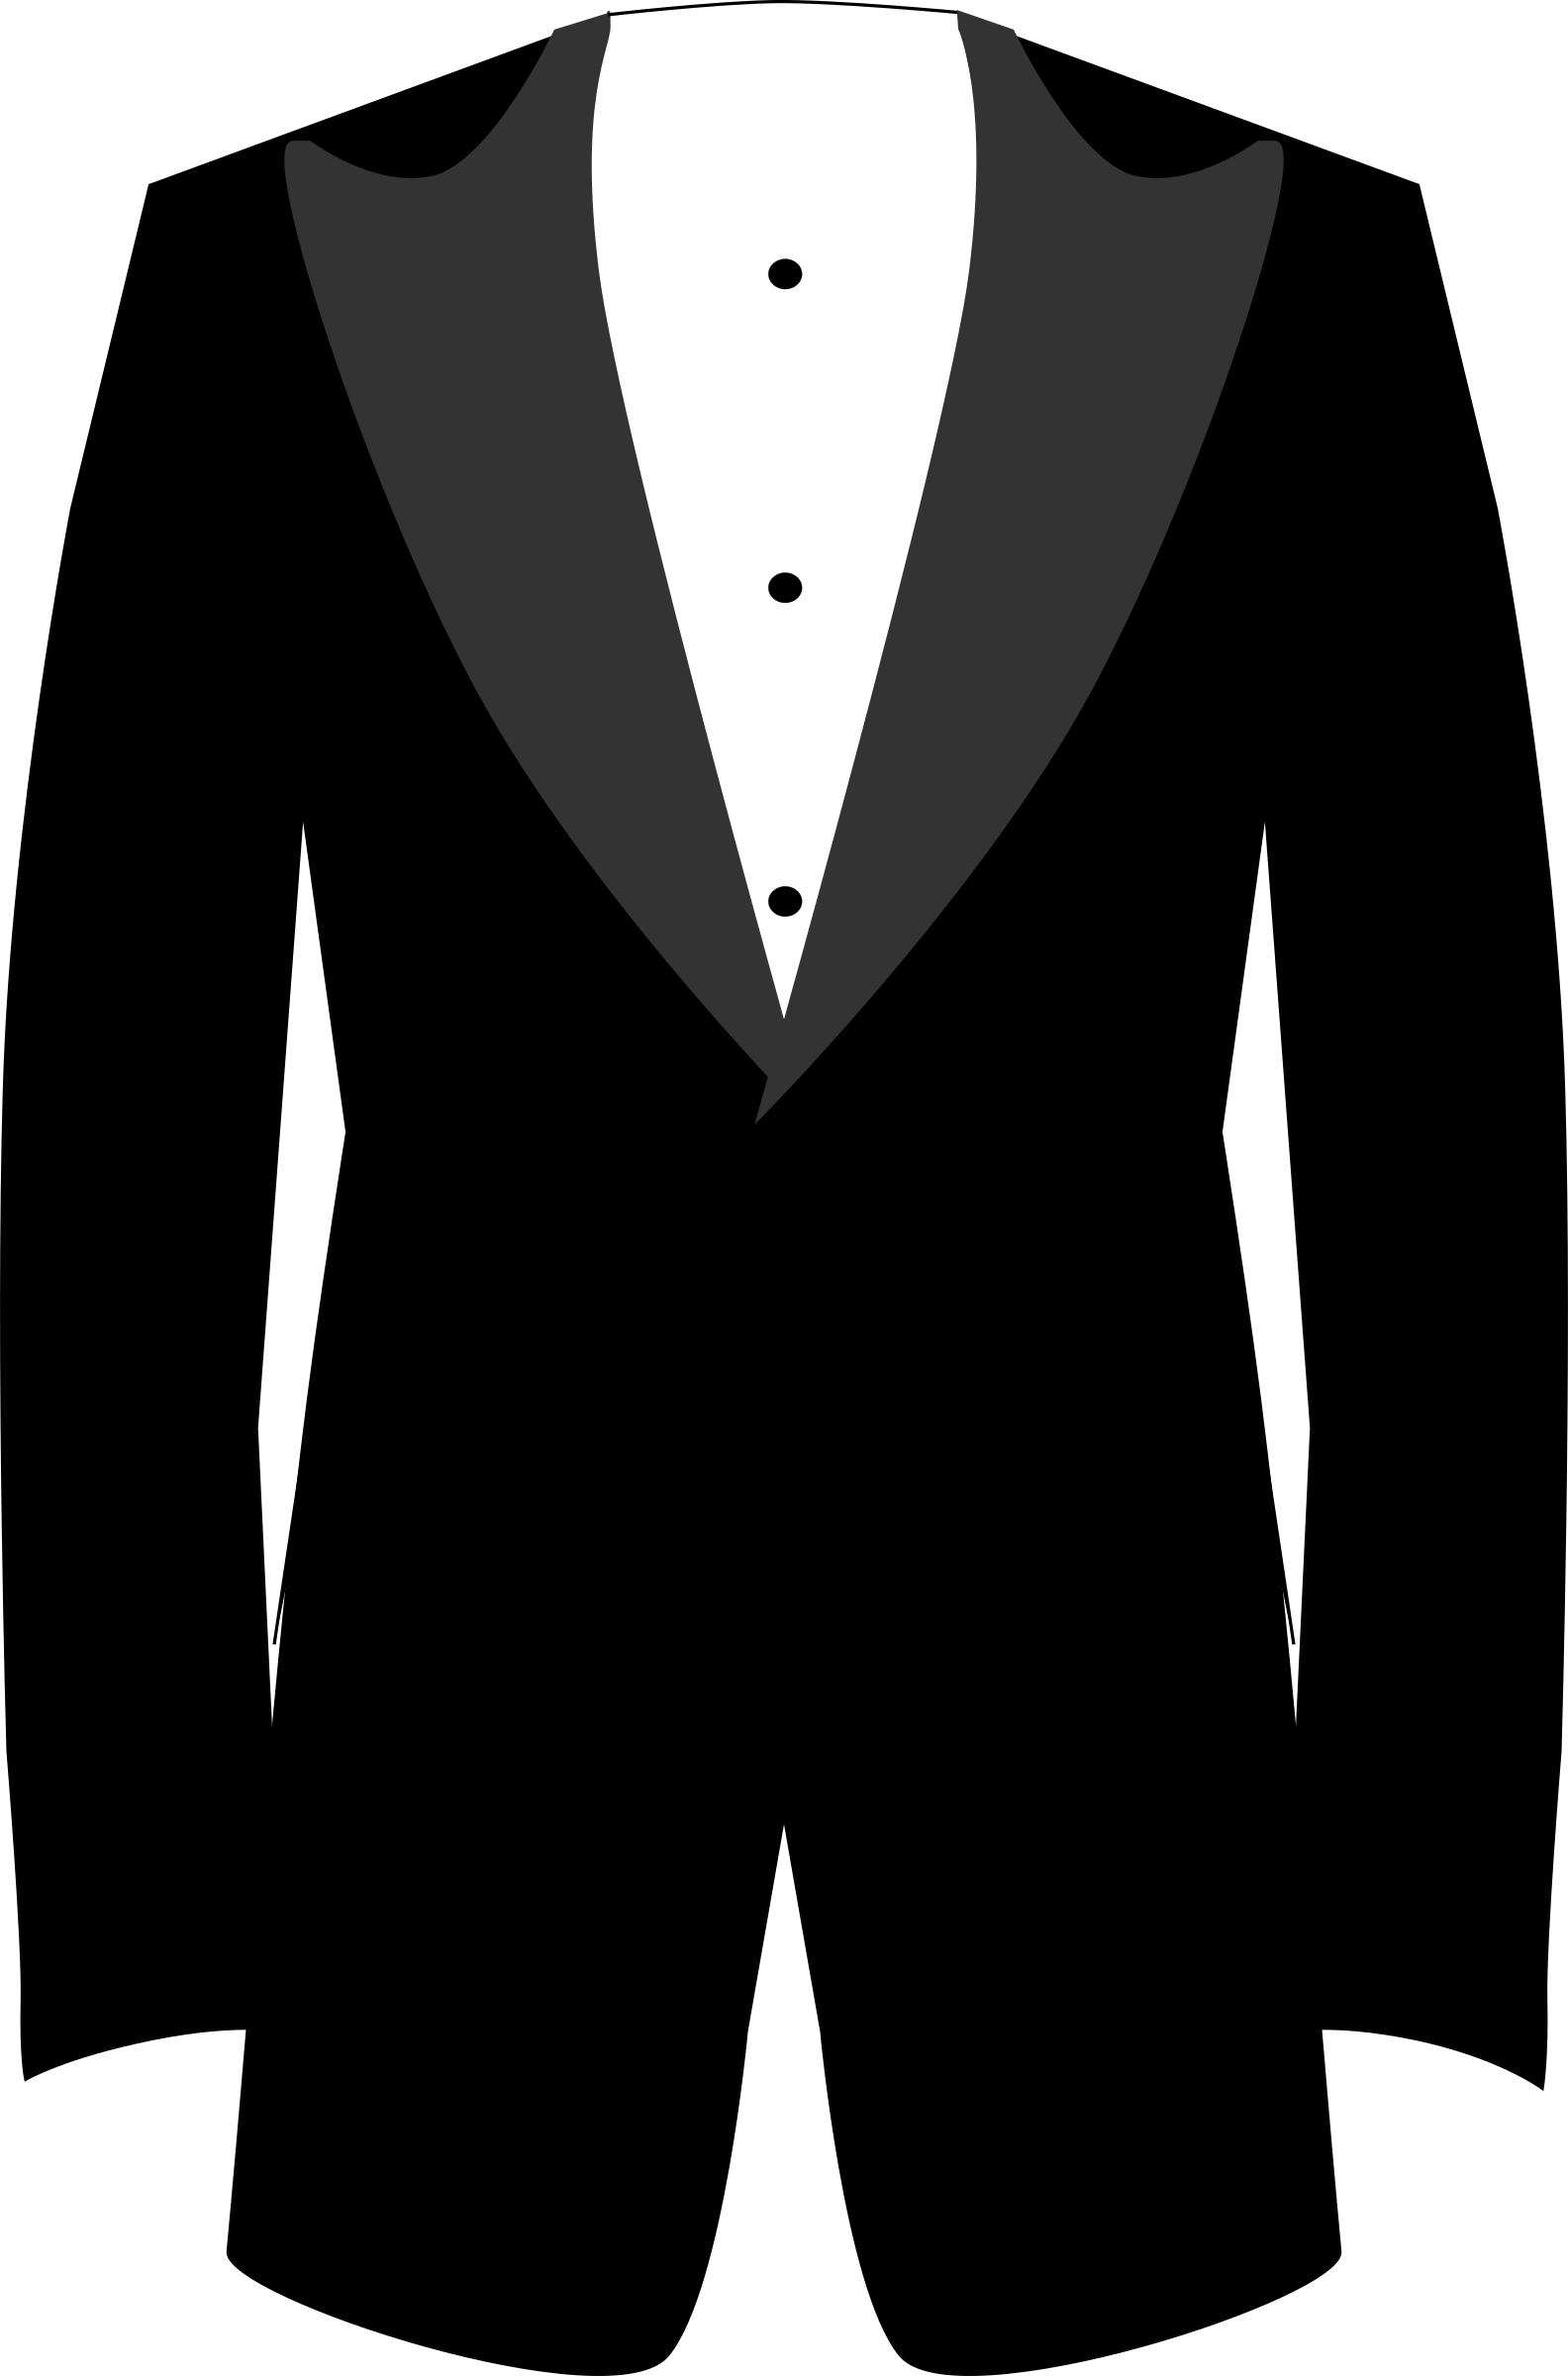 Tuxedo clipart 20 free Cliparts | Download images on Clipground 2019